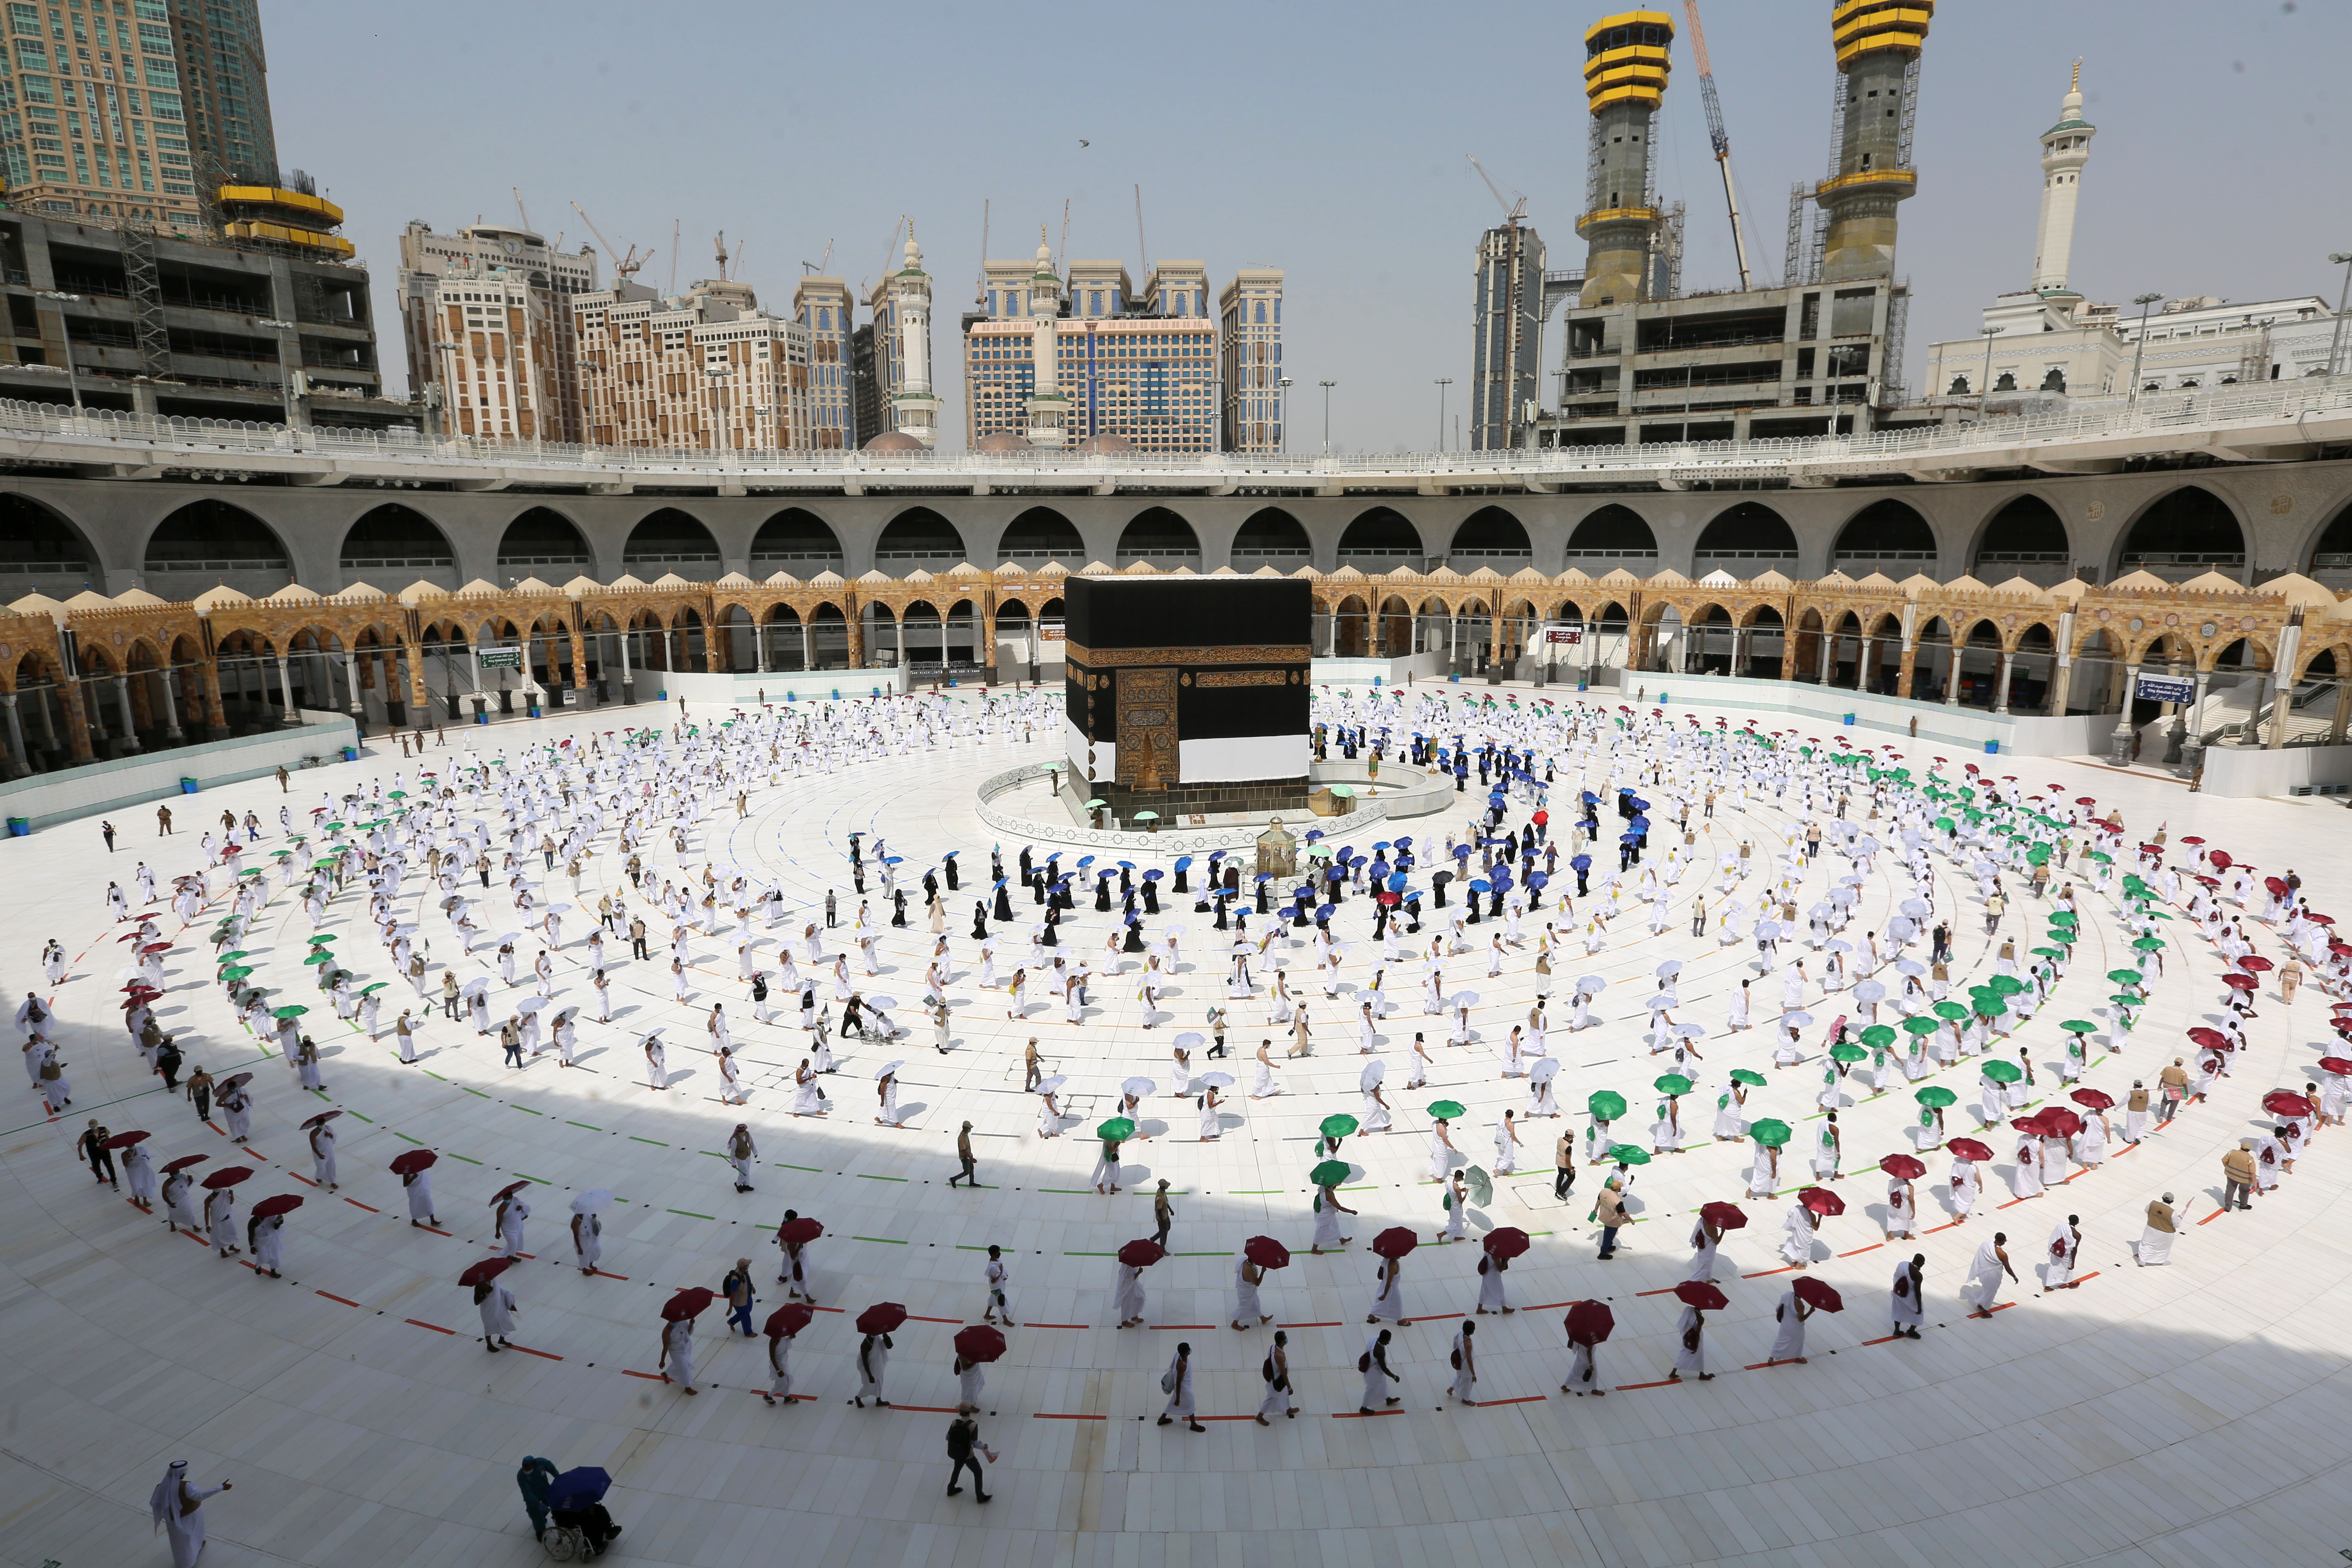 Muslim pilgrims walk around the Kaaba at the center of the Grand Mosque in Mecca, Saudi Arabia, on July 29.